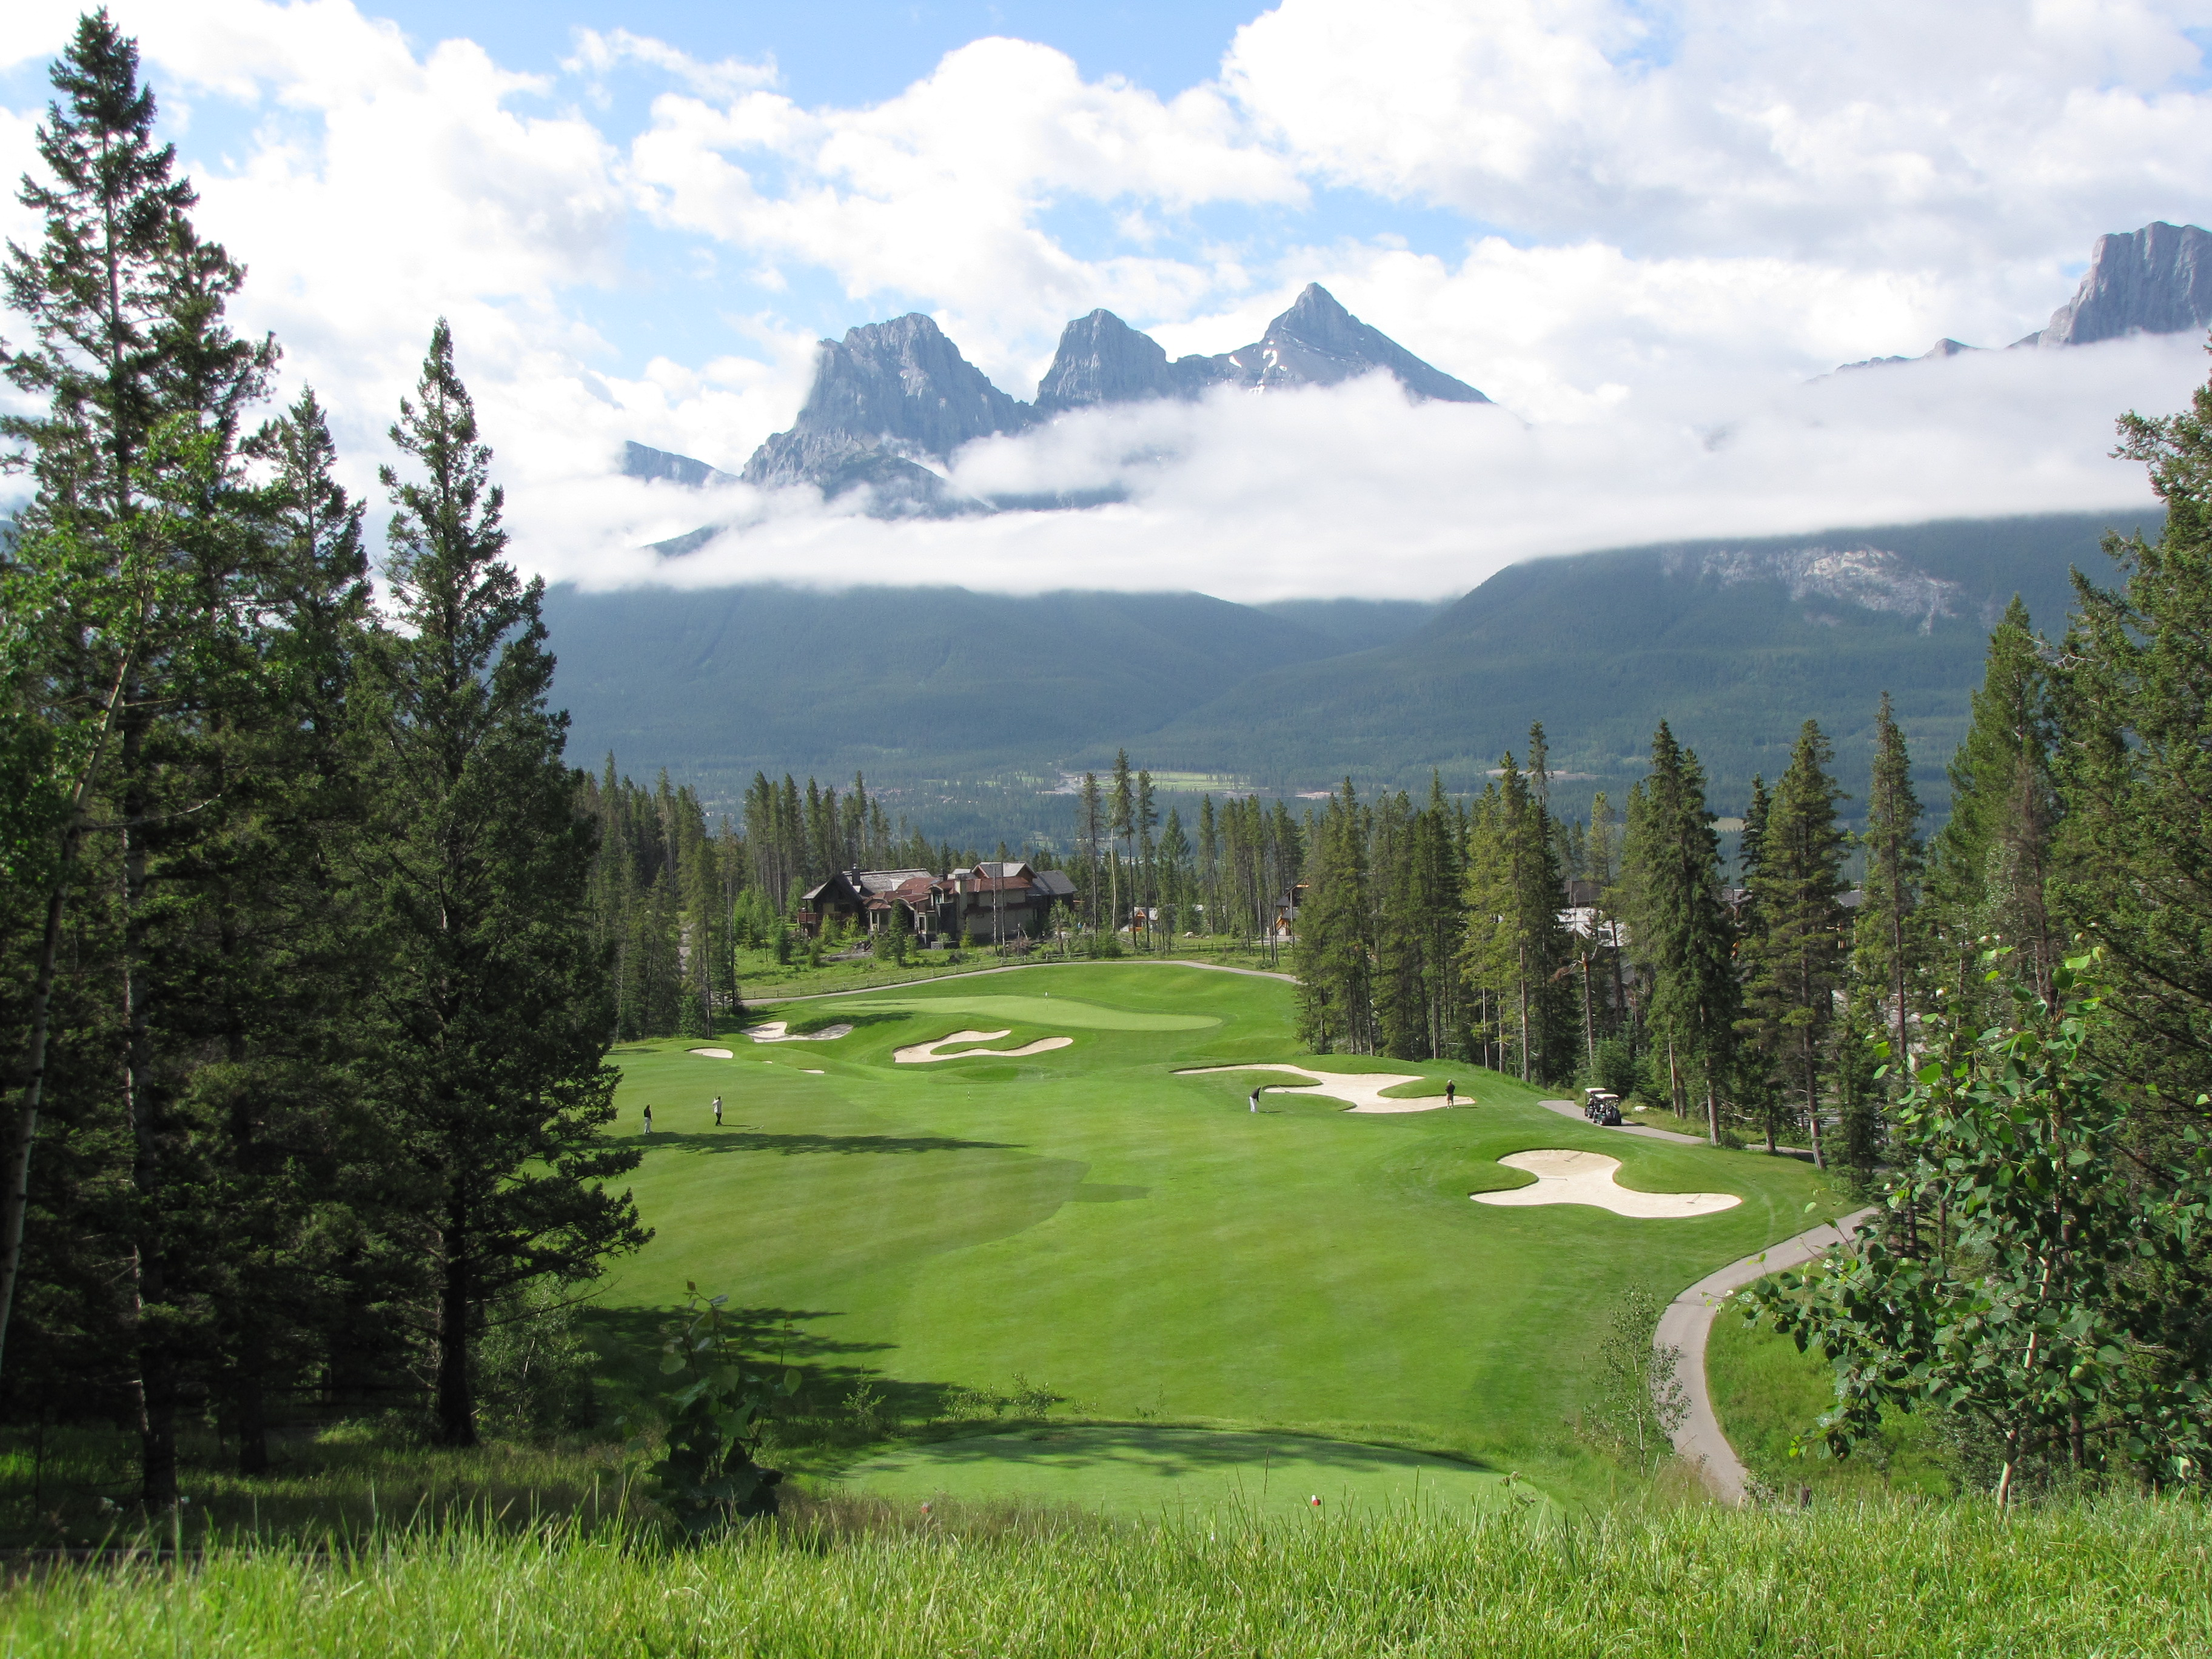 Canmore, just outside Banff, offers a series of remarkable golf courses with great views. This was taken at Silvertip Resort.  JIM BYERS PHOTO